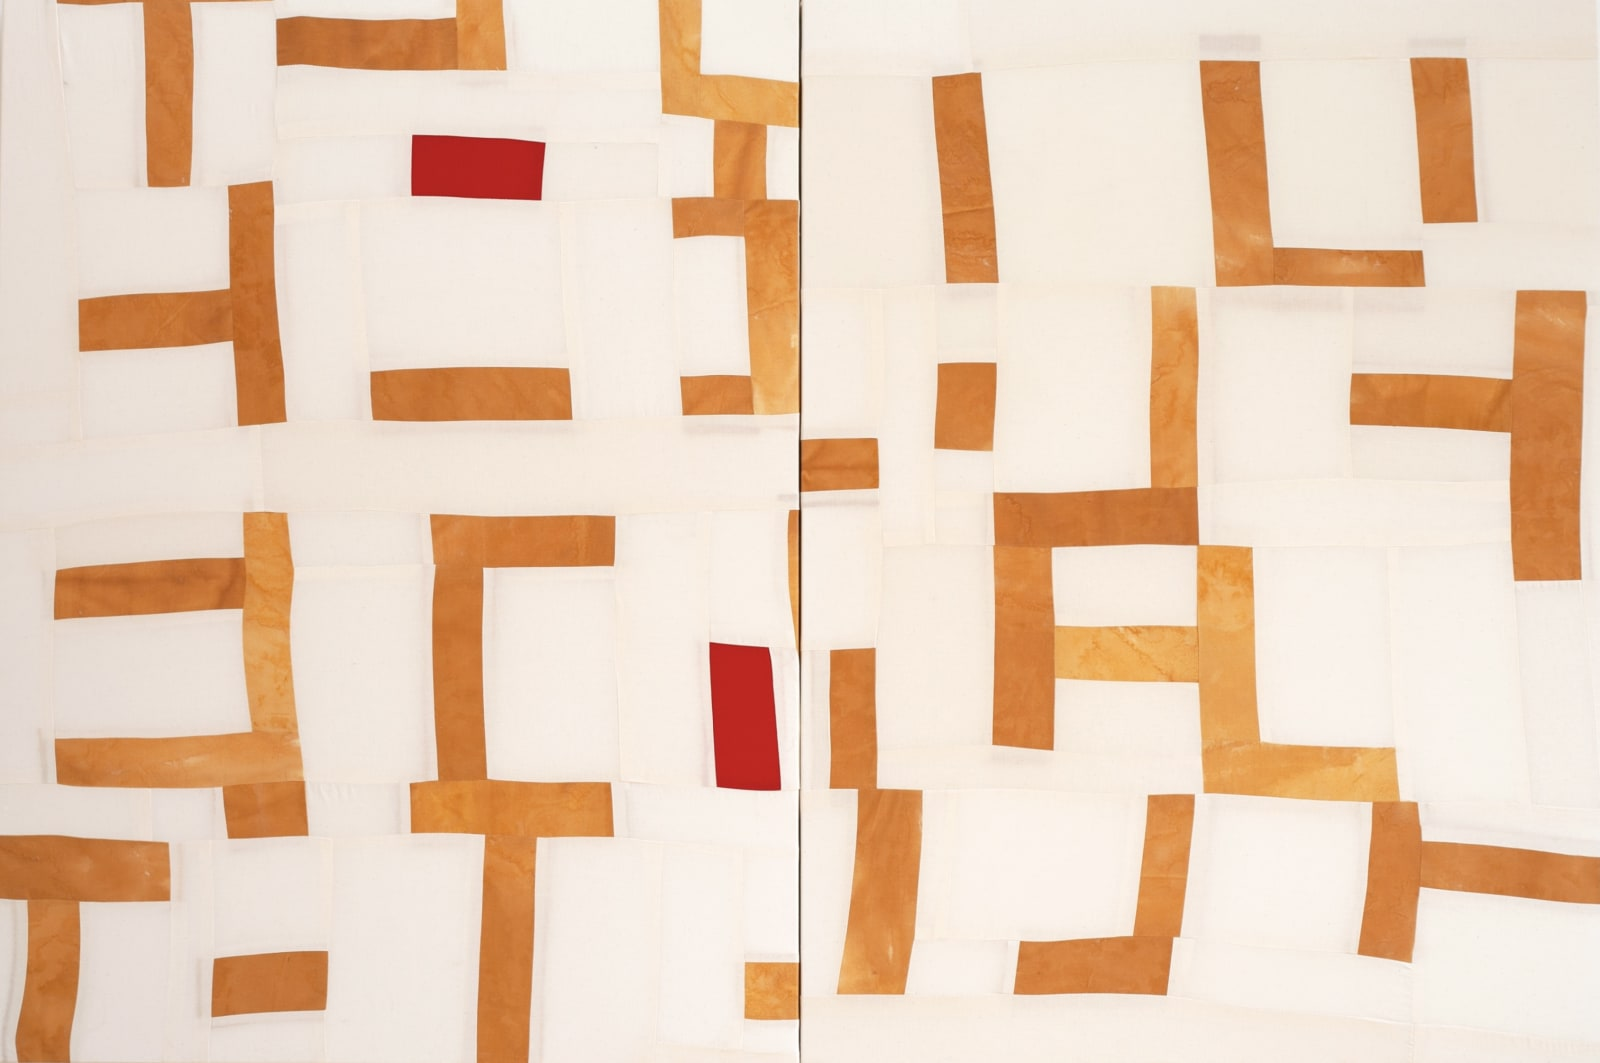 Bastienne Schmidt Grid Breaking Open, 2021 Sewn muslin fabric pigmented and tinted 48 x72 in. (BS 303) $17,000